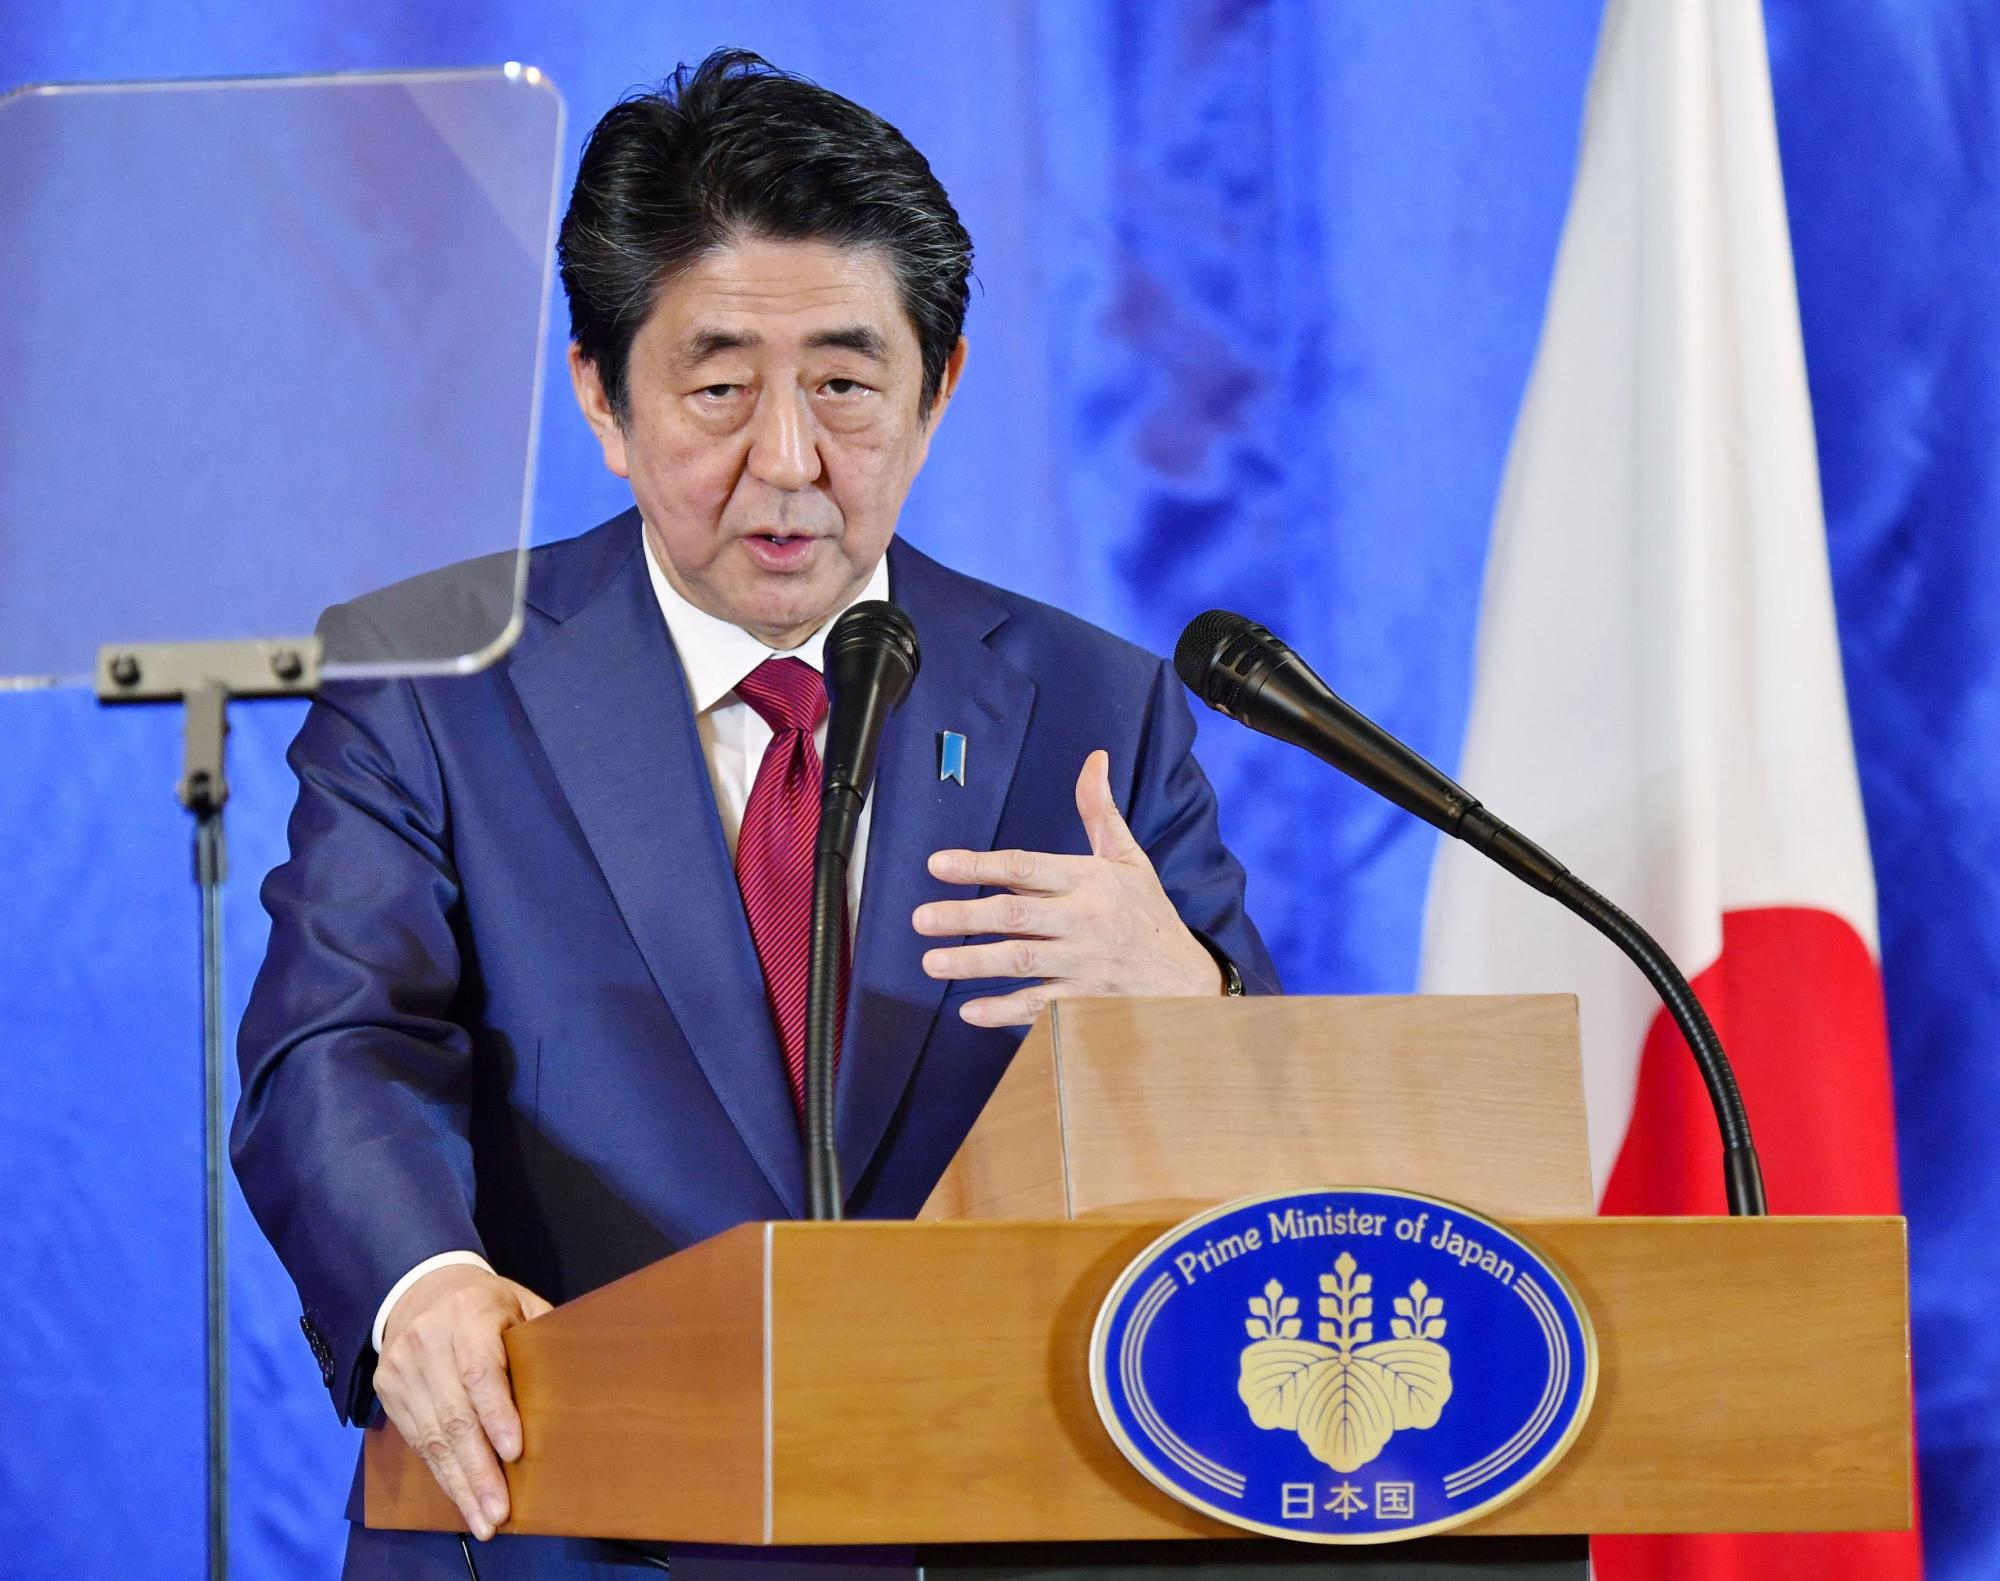 Prime Minister Shinzo Abe speaks at a news conference after holding talks with his Chinese and South Korean counterparts in Chengdu, China, last week. | KYODO